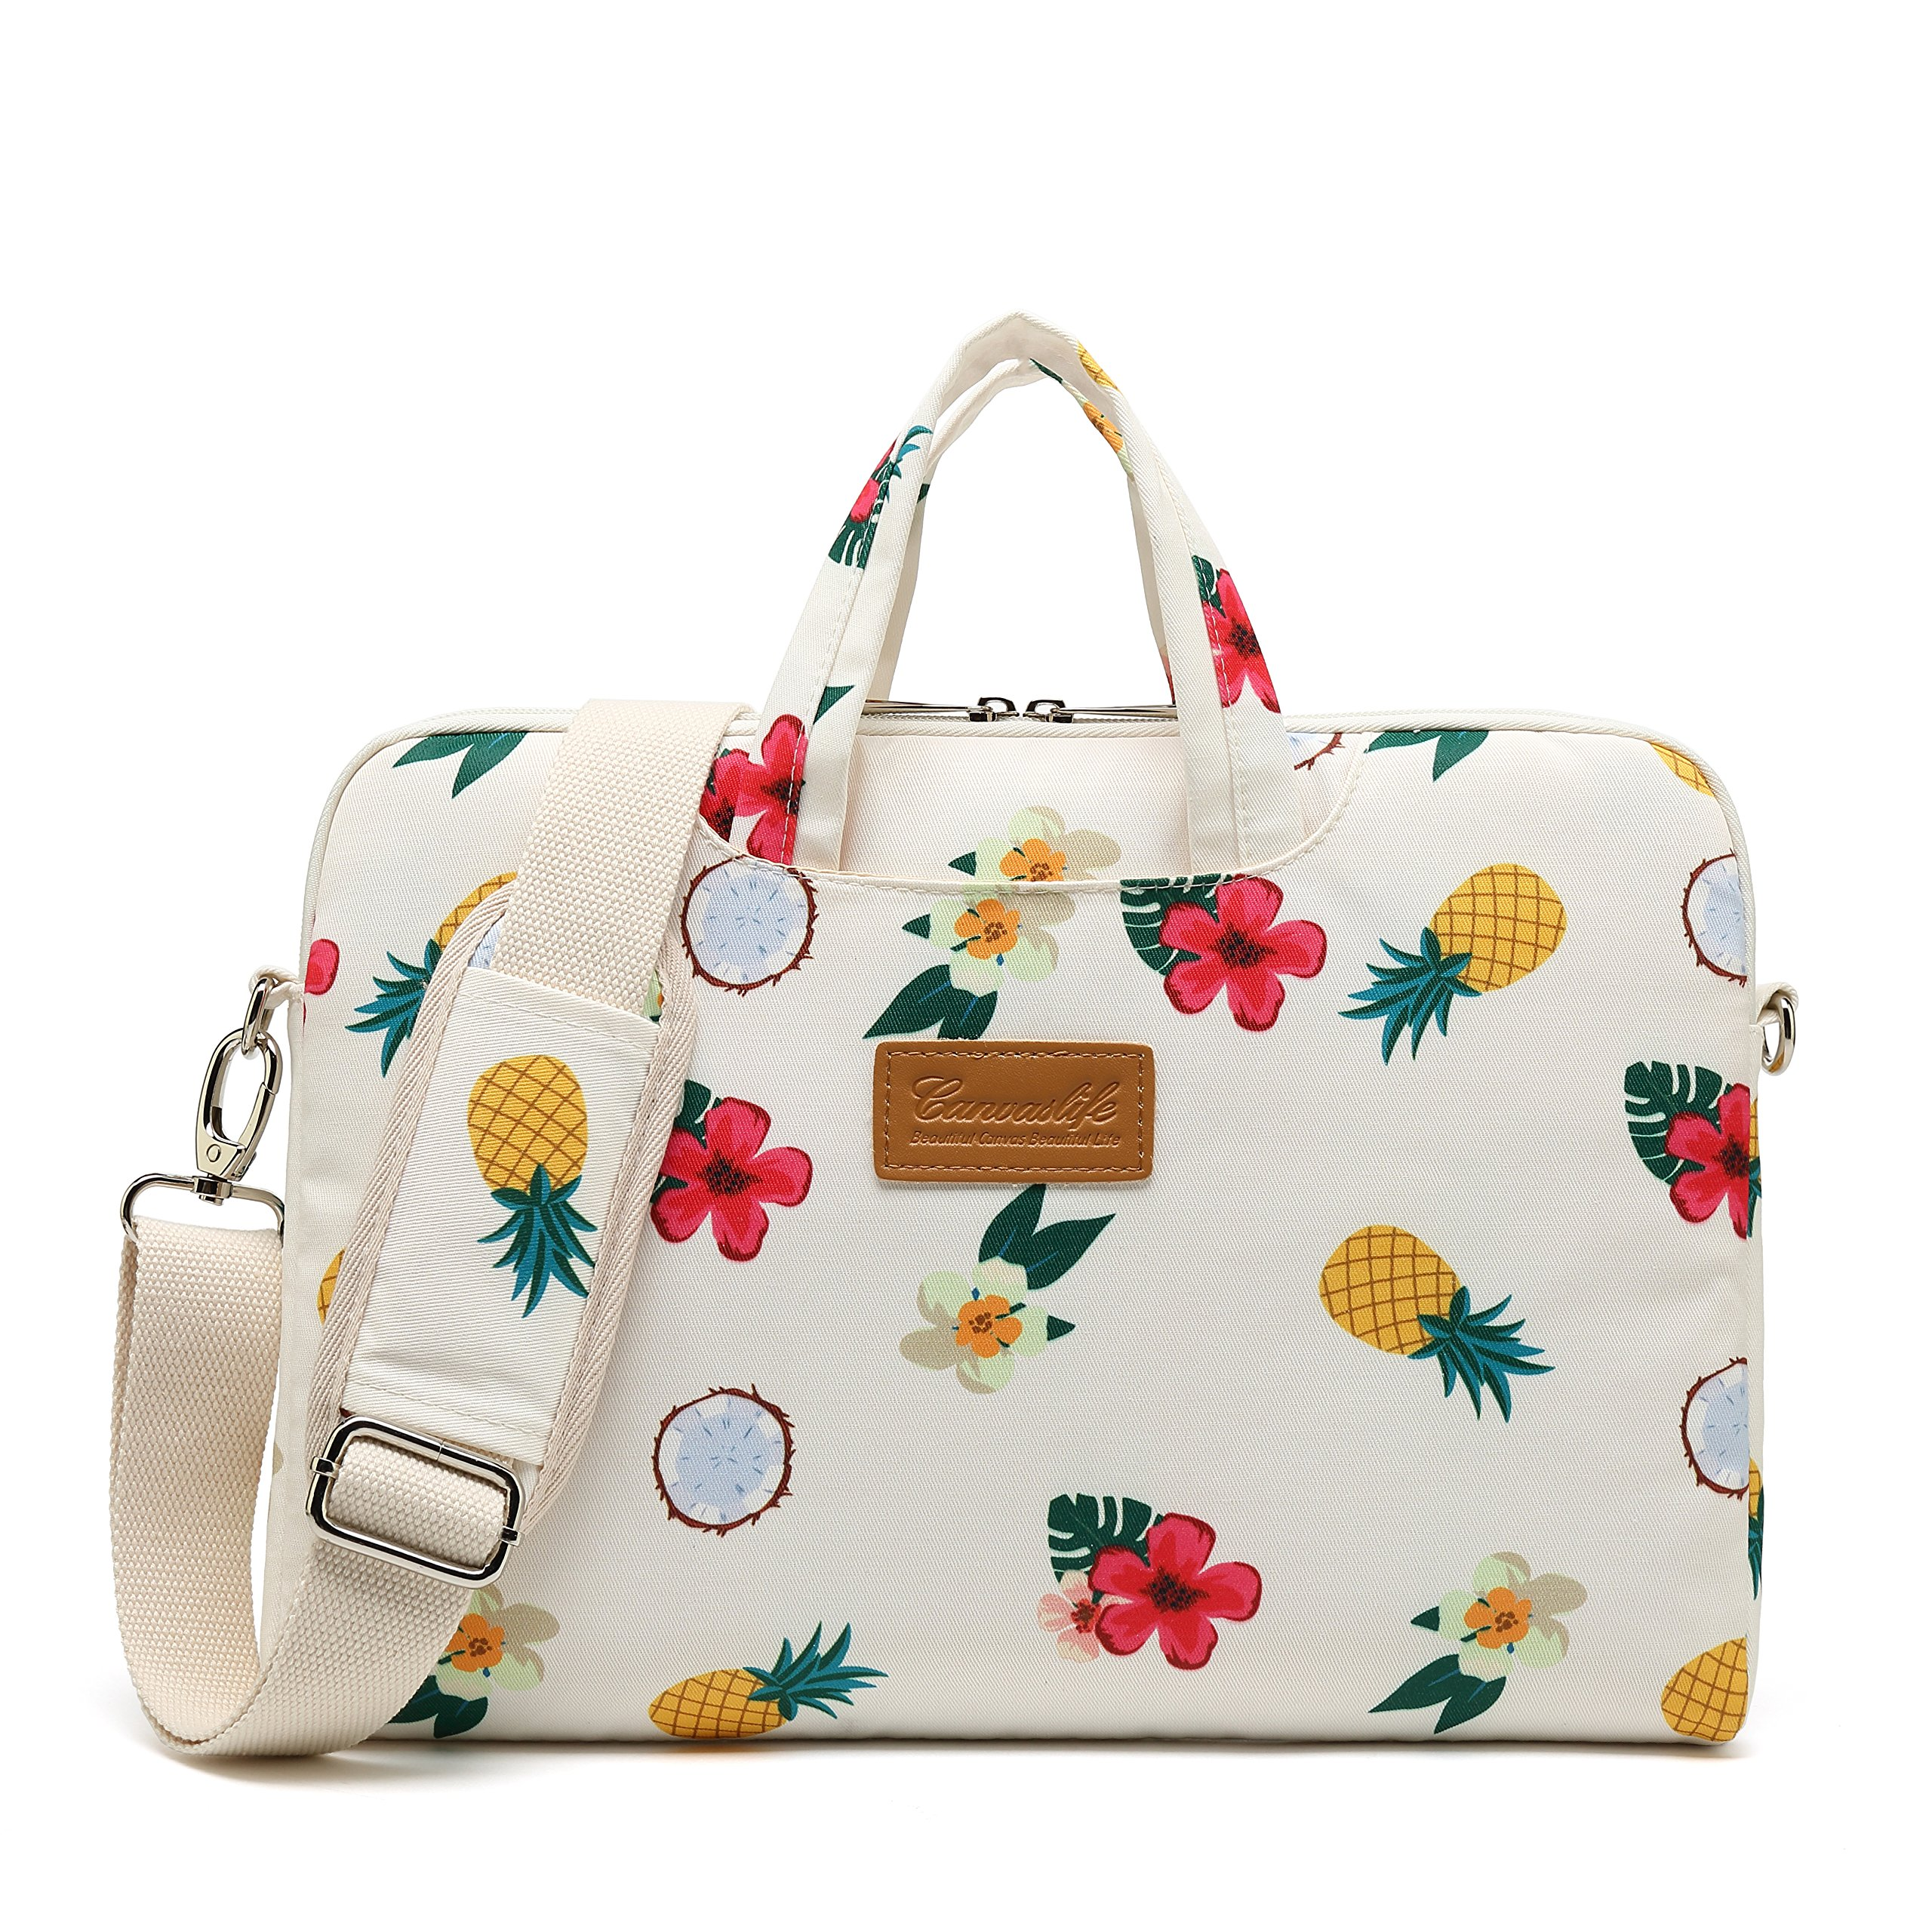 Canvaslife Pineapple Pattern 15 inch Waterproof Laptop Shoulder Messenger Bag Case with Rebound Bubble Protection for 14 inch-15.6 inch Laptop 15 Case Bag